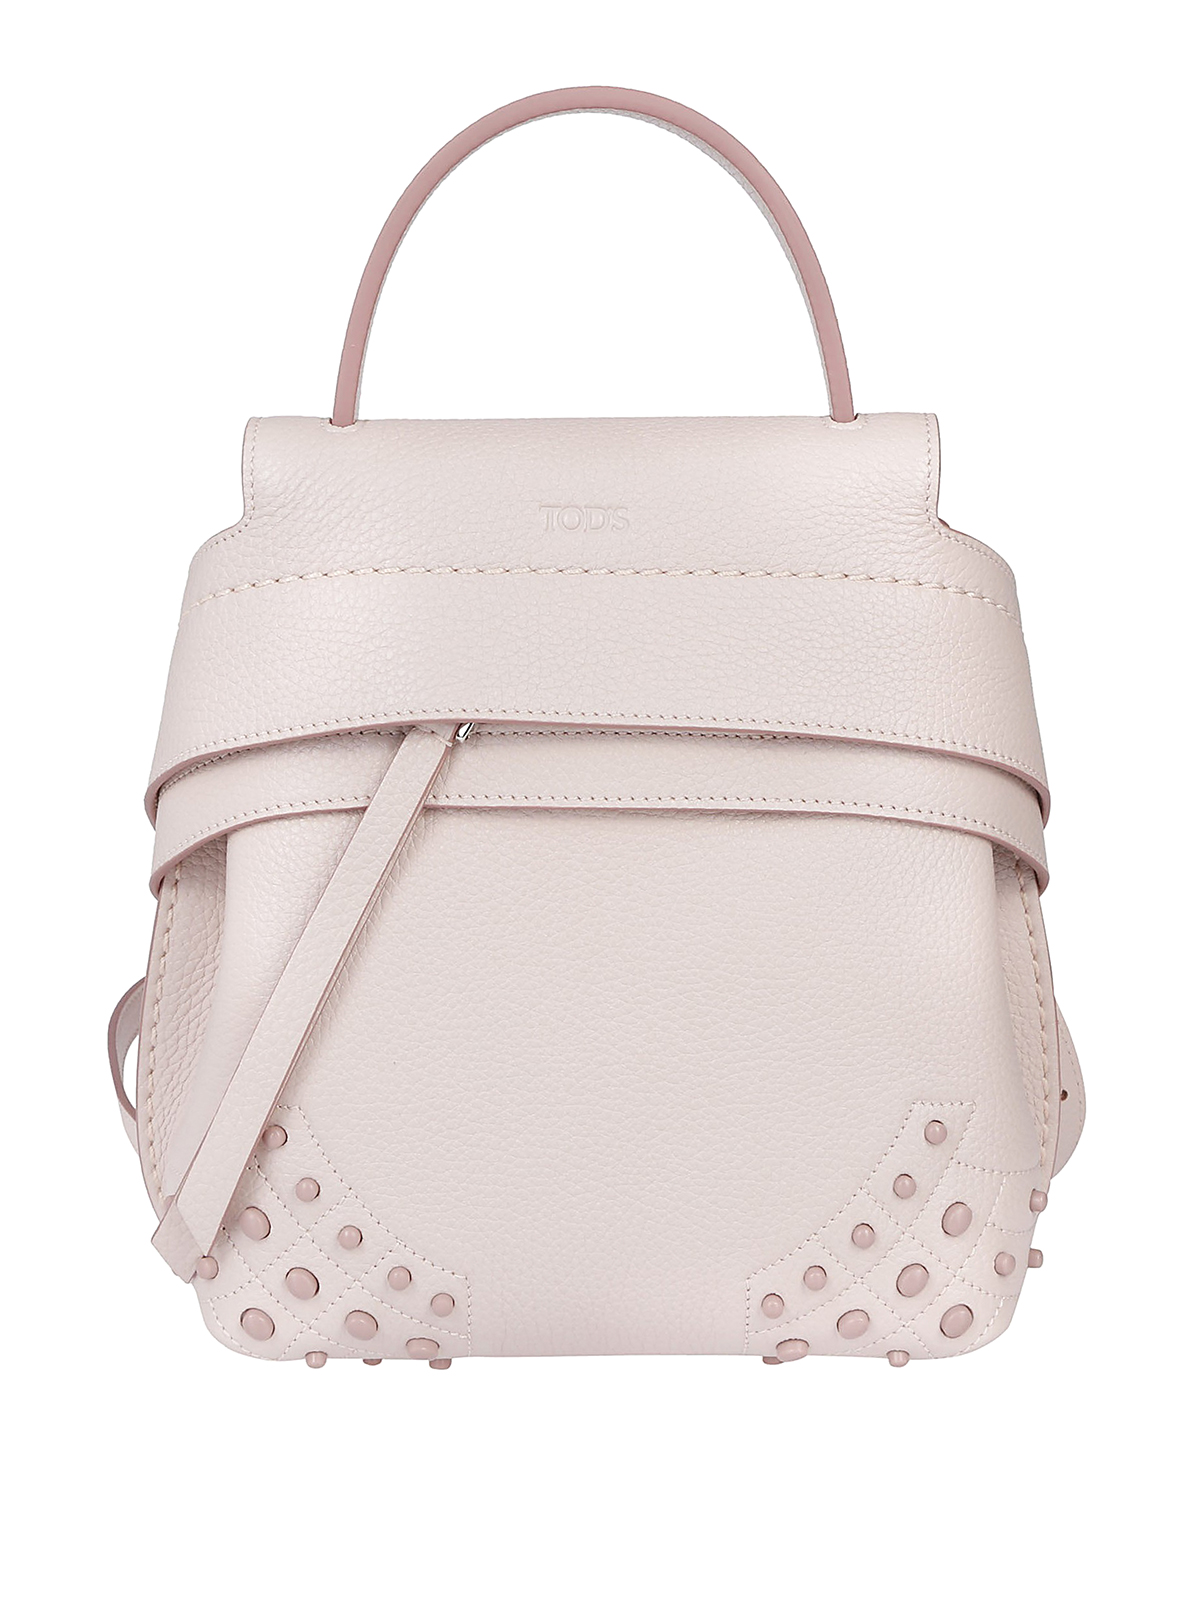 d96604bbe8 Tod S - Wave Bag Mini pink leather backpack - backpacks ...